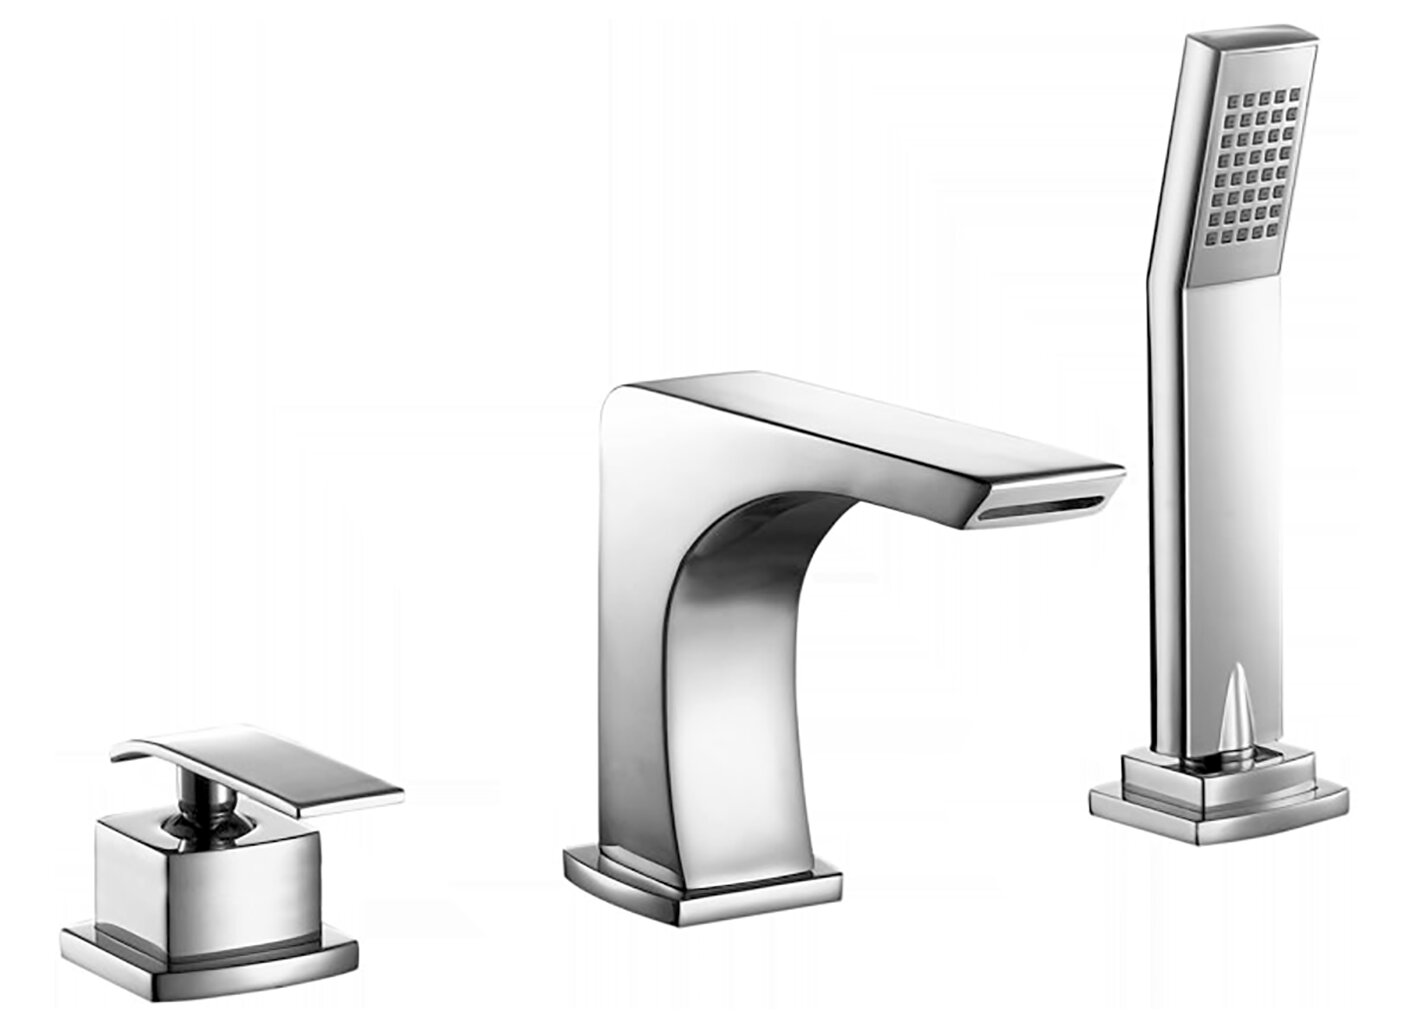 Valley Acrylic Ltd Single Handle Deck Mounted Roman Tub Faucet With Diverter And Handshower Wayfair